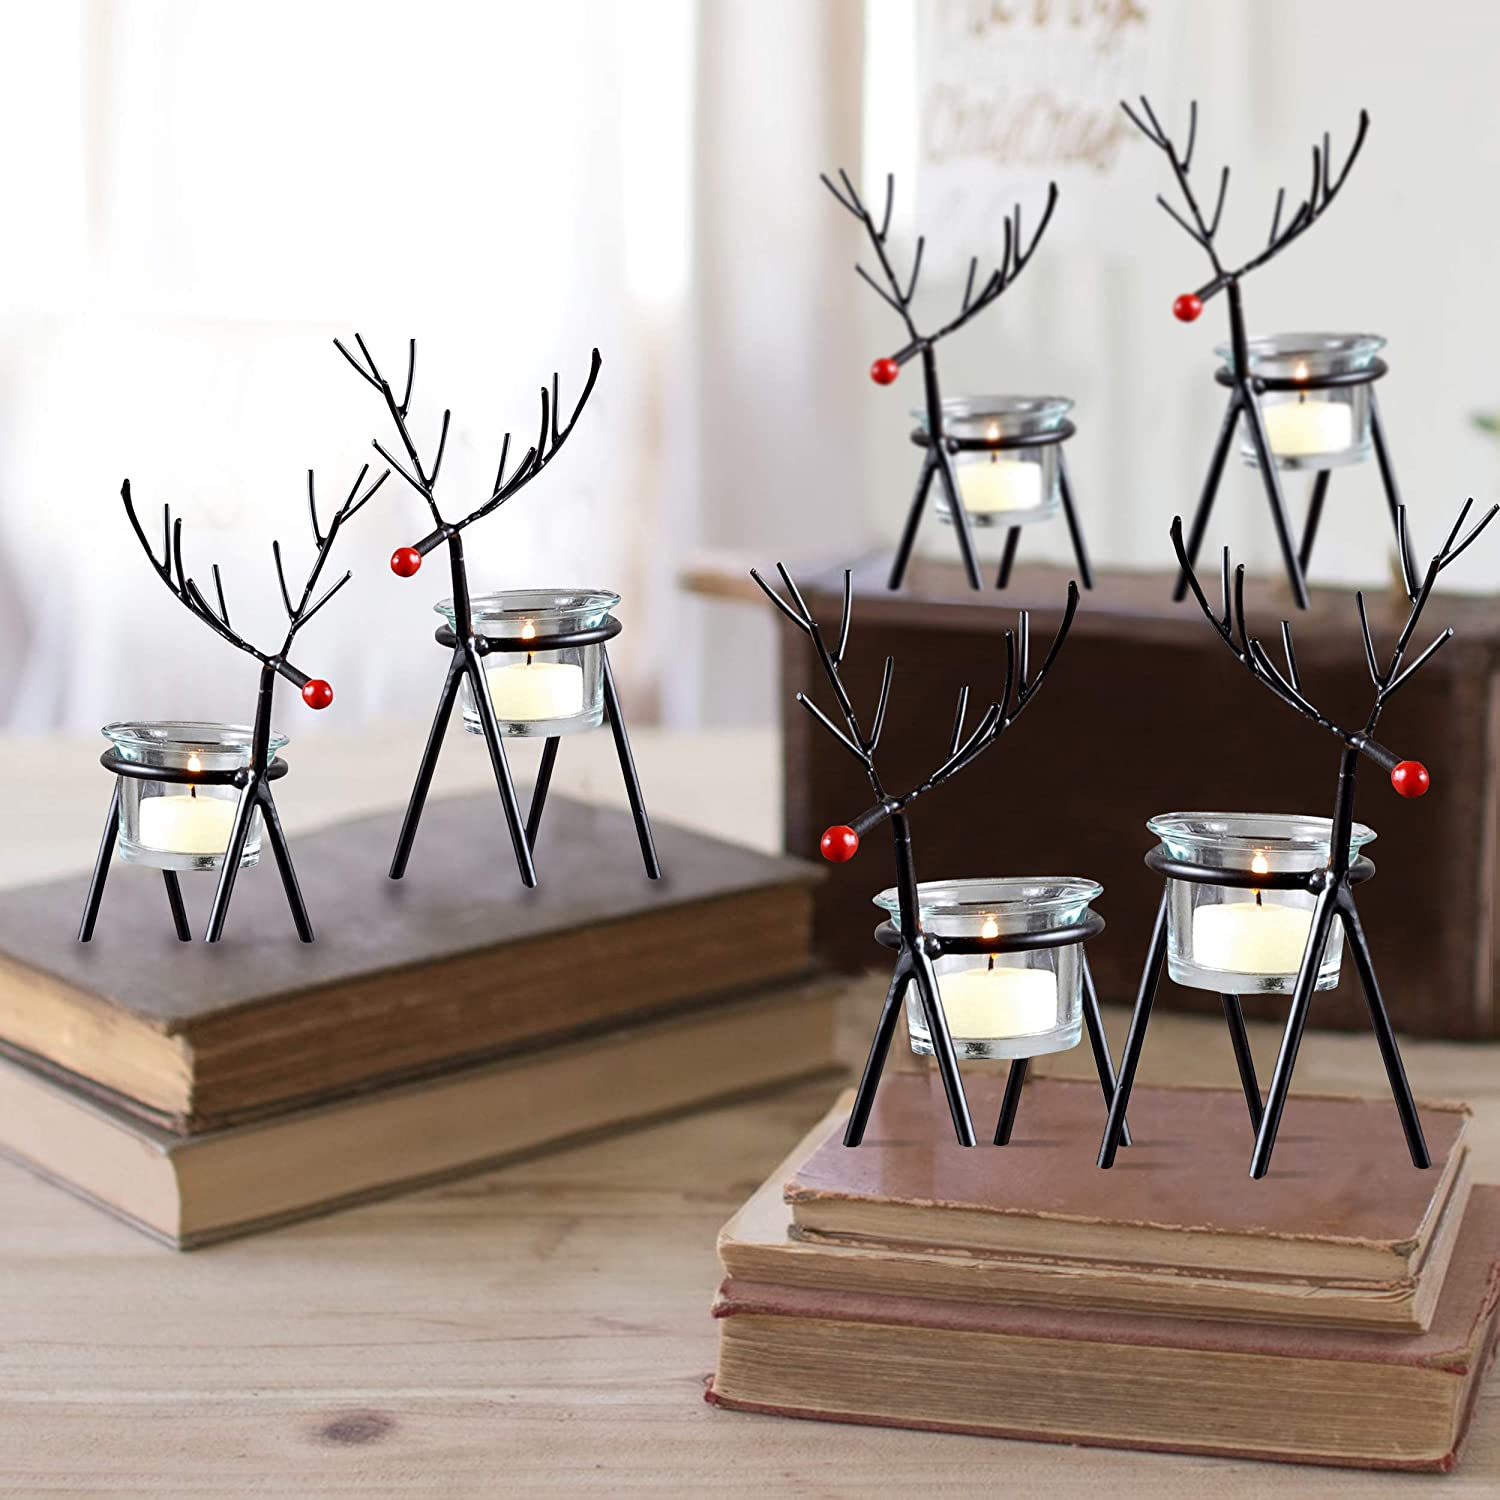 Buy Tied Ribbons Reindeer Tealight Candle Holders Home Decoration Items For Living Room Bedroom Dining Room Tealight Candle Holders For Home Decor Pack Of 6 Online At Low Prices In India